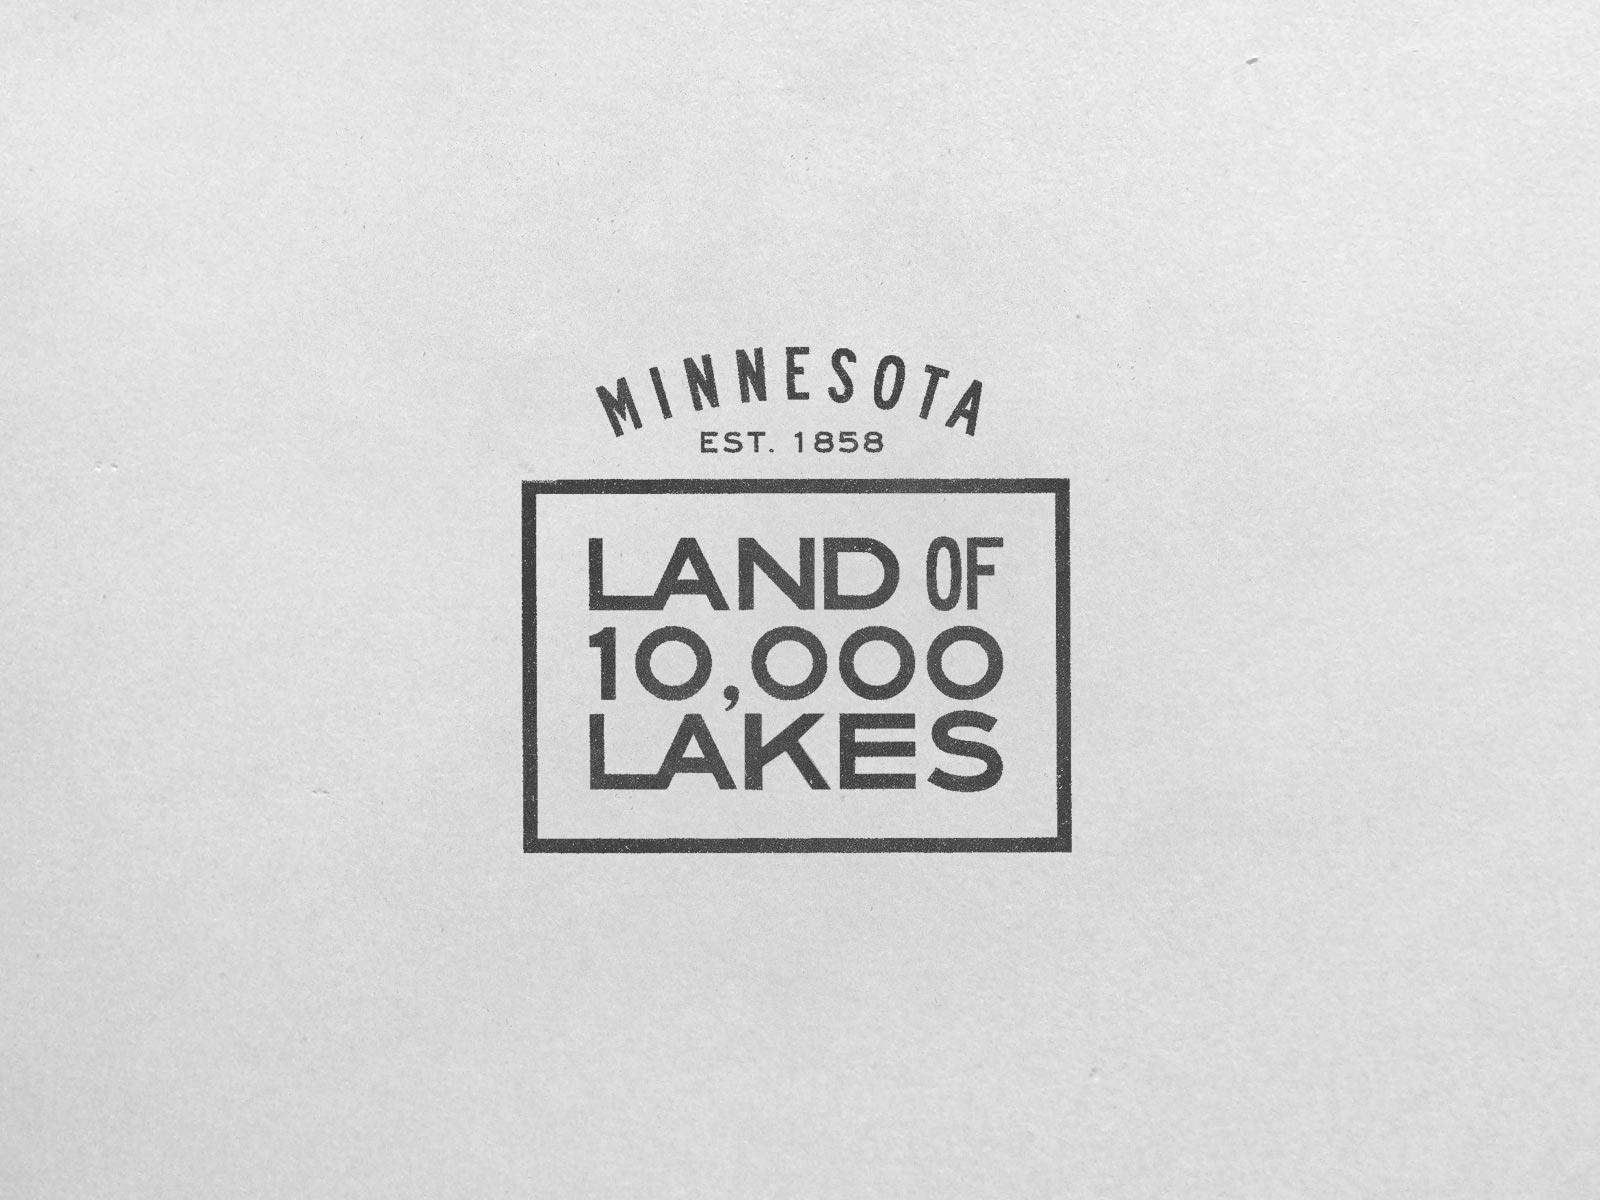 1. Land of 10,000 Lakes  - Depending on one's definition of a lake, technically there are 11,842 lakes that are 10 acres or more.